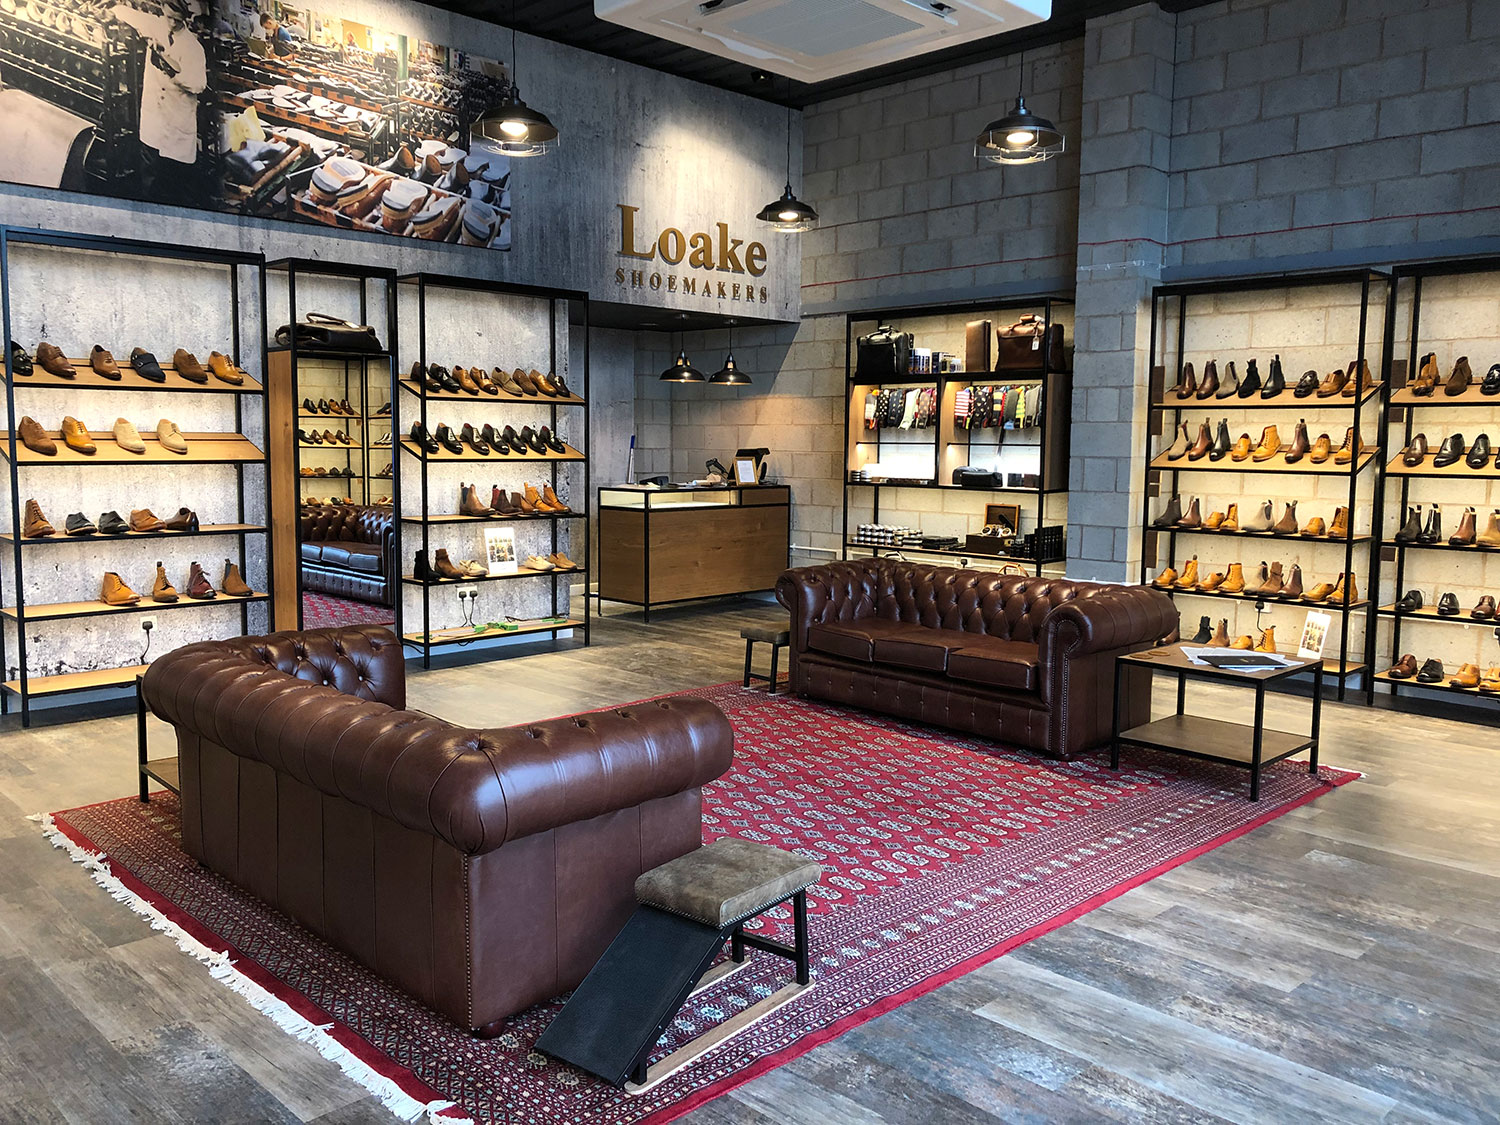 loake-factory-shop1.jpg